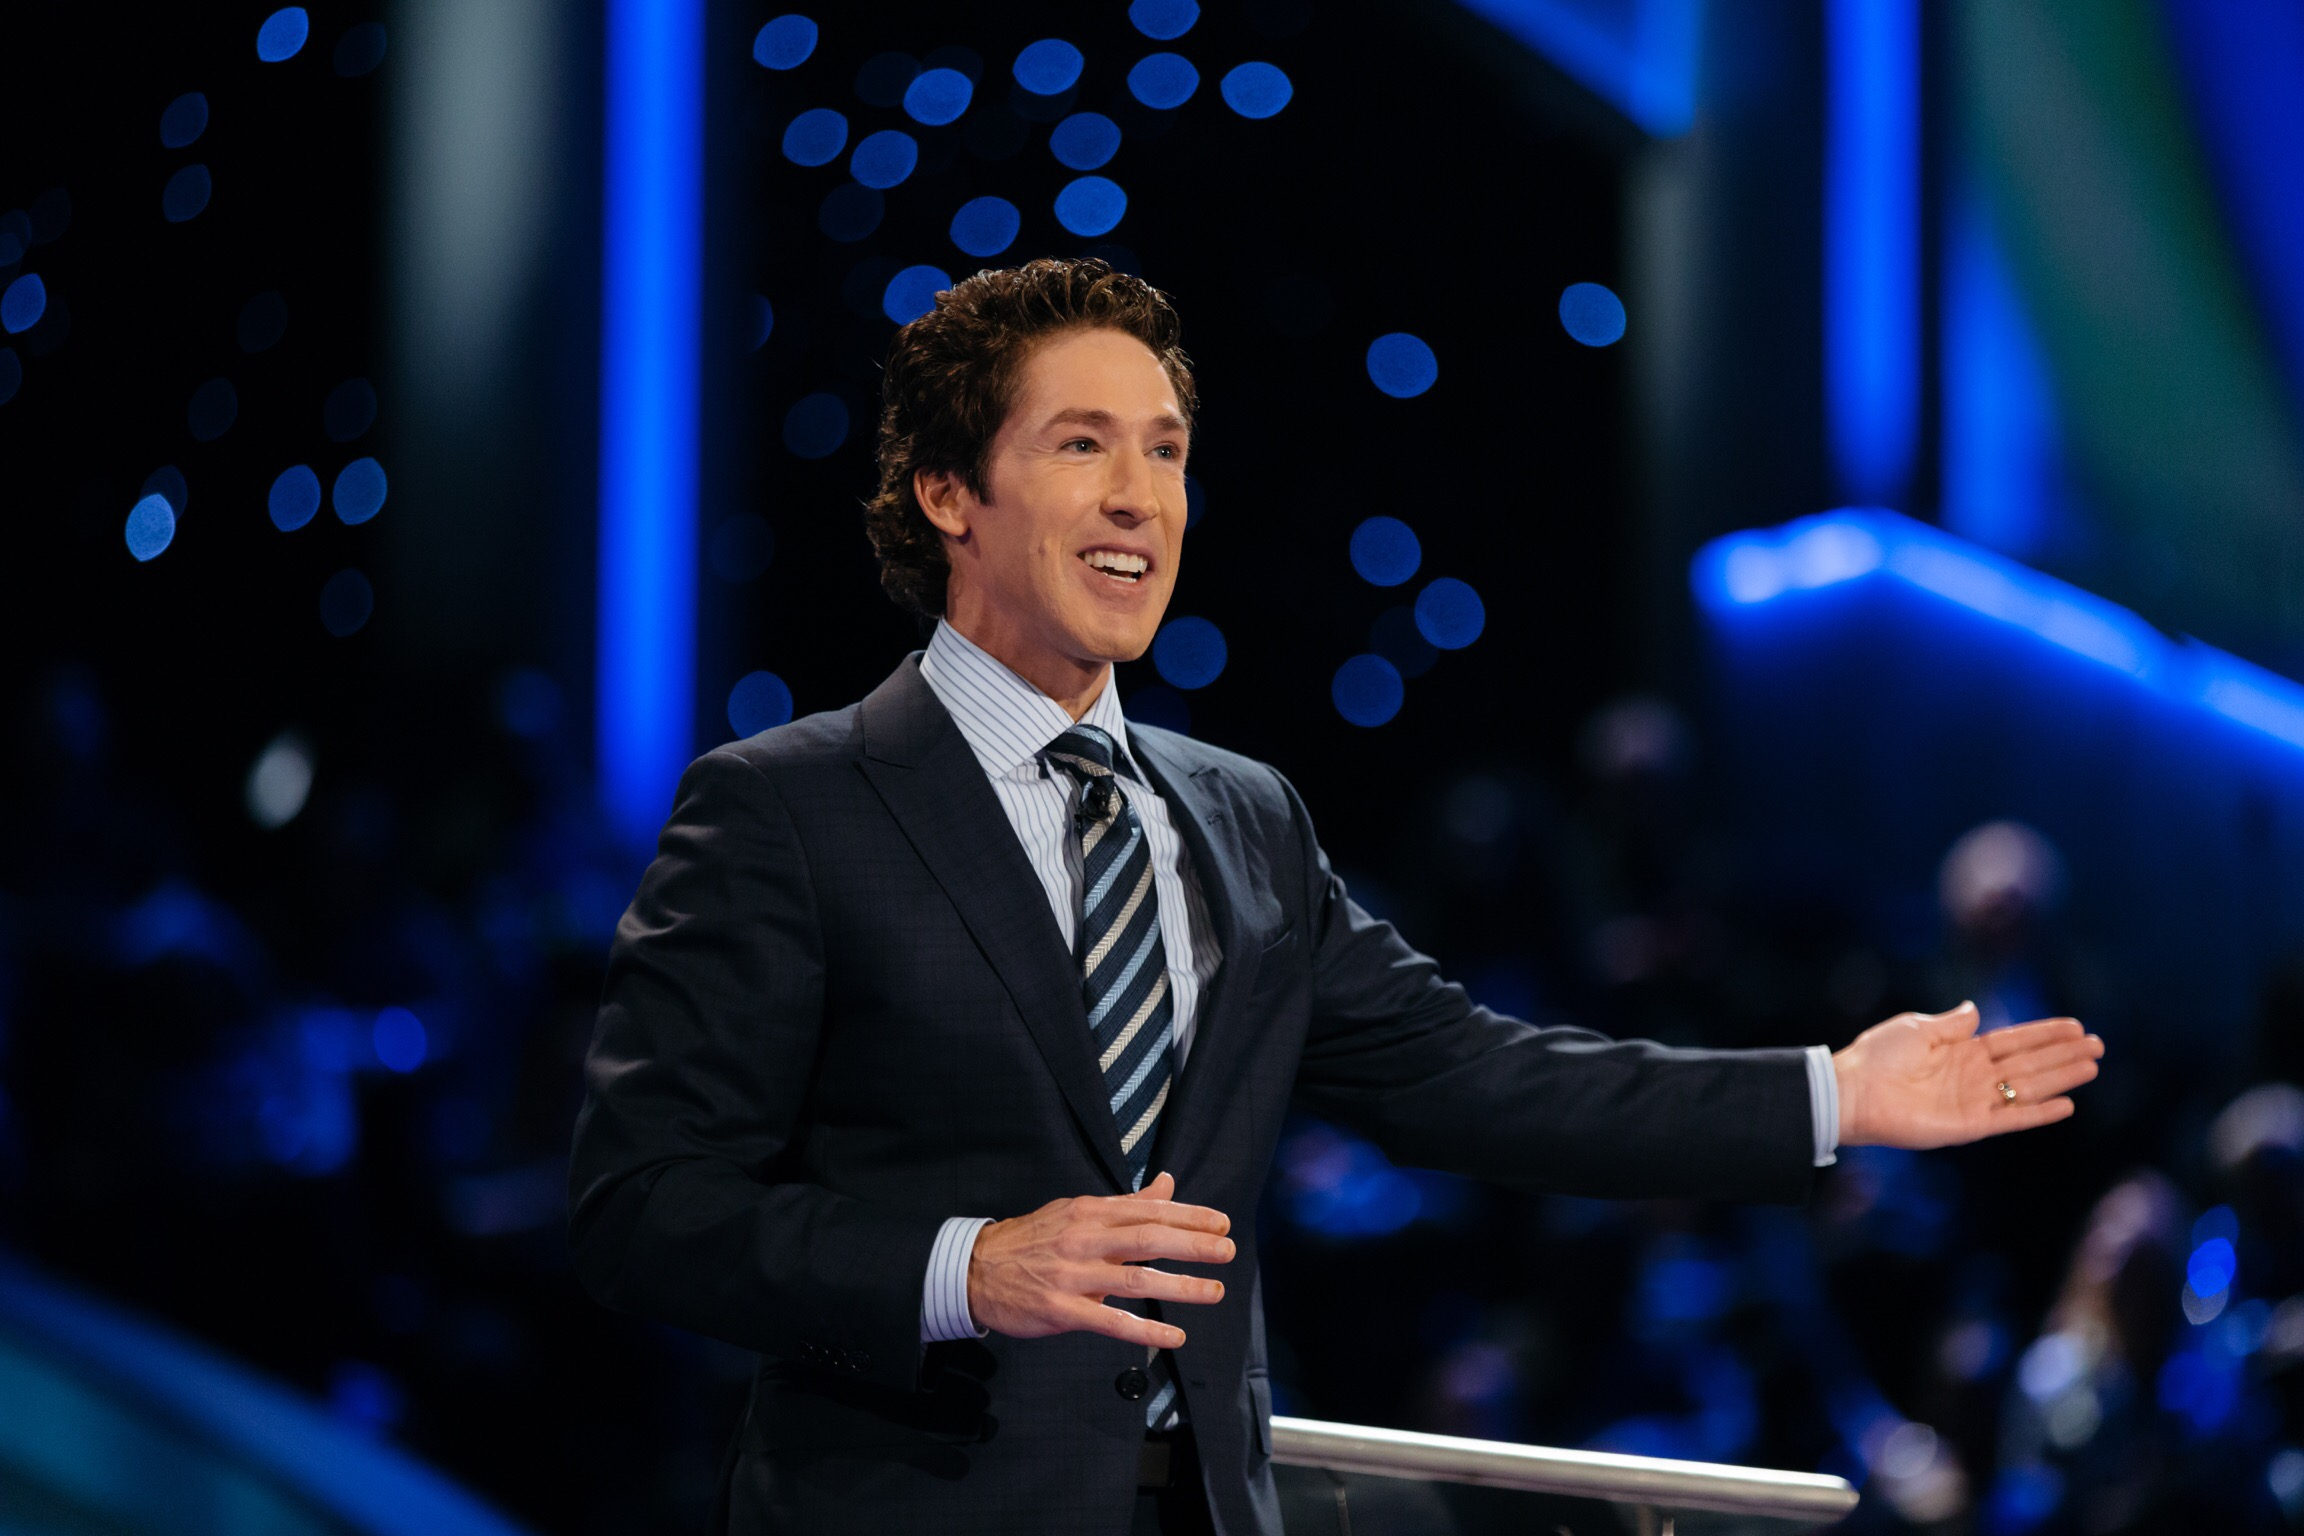 Joel Osteen at the Drowning Point